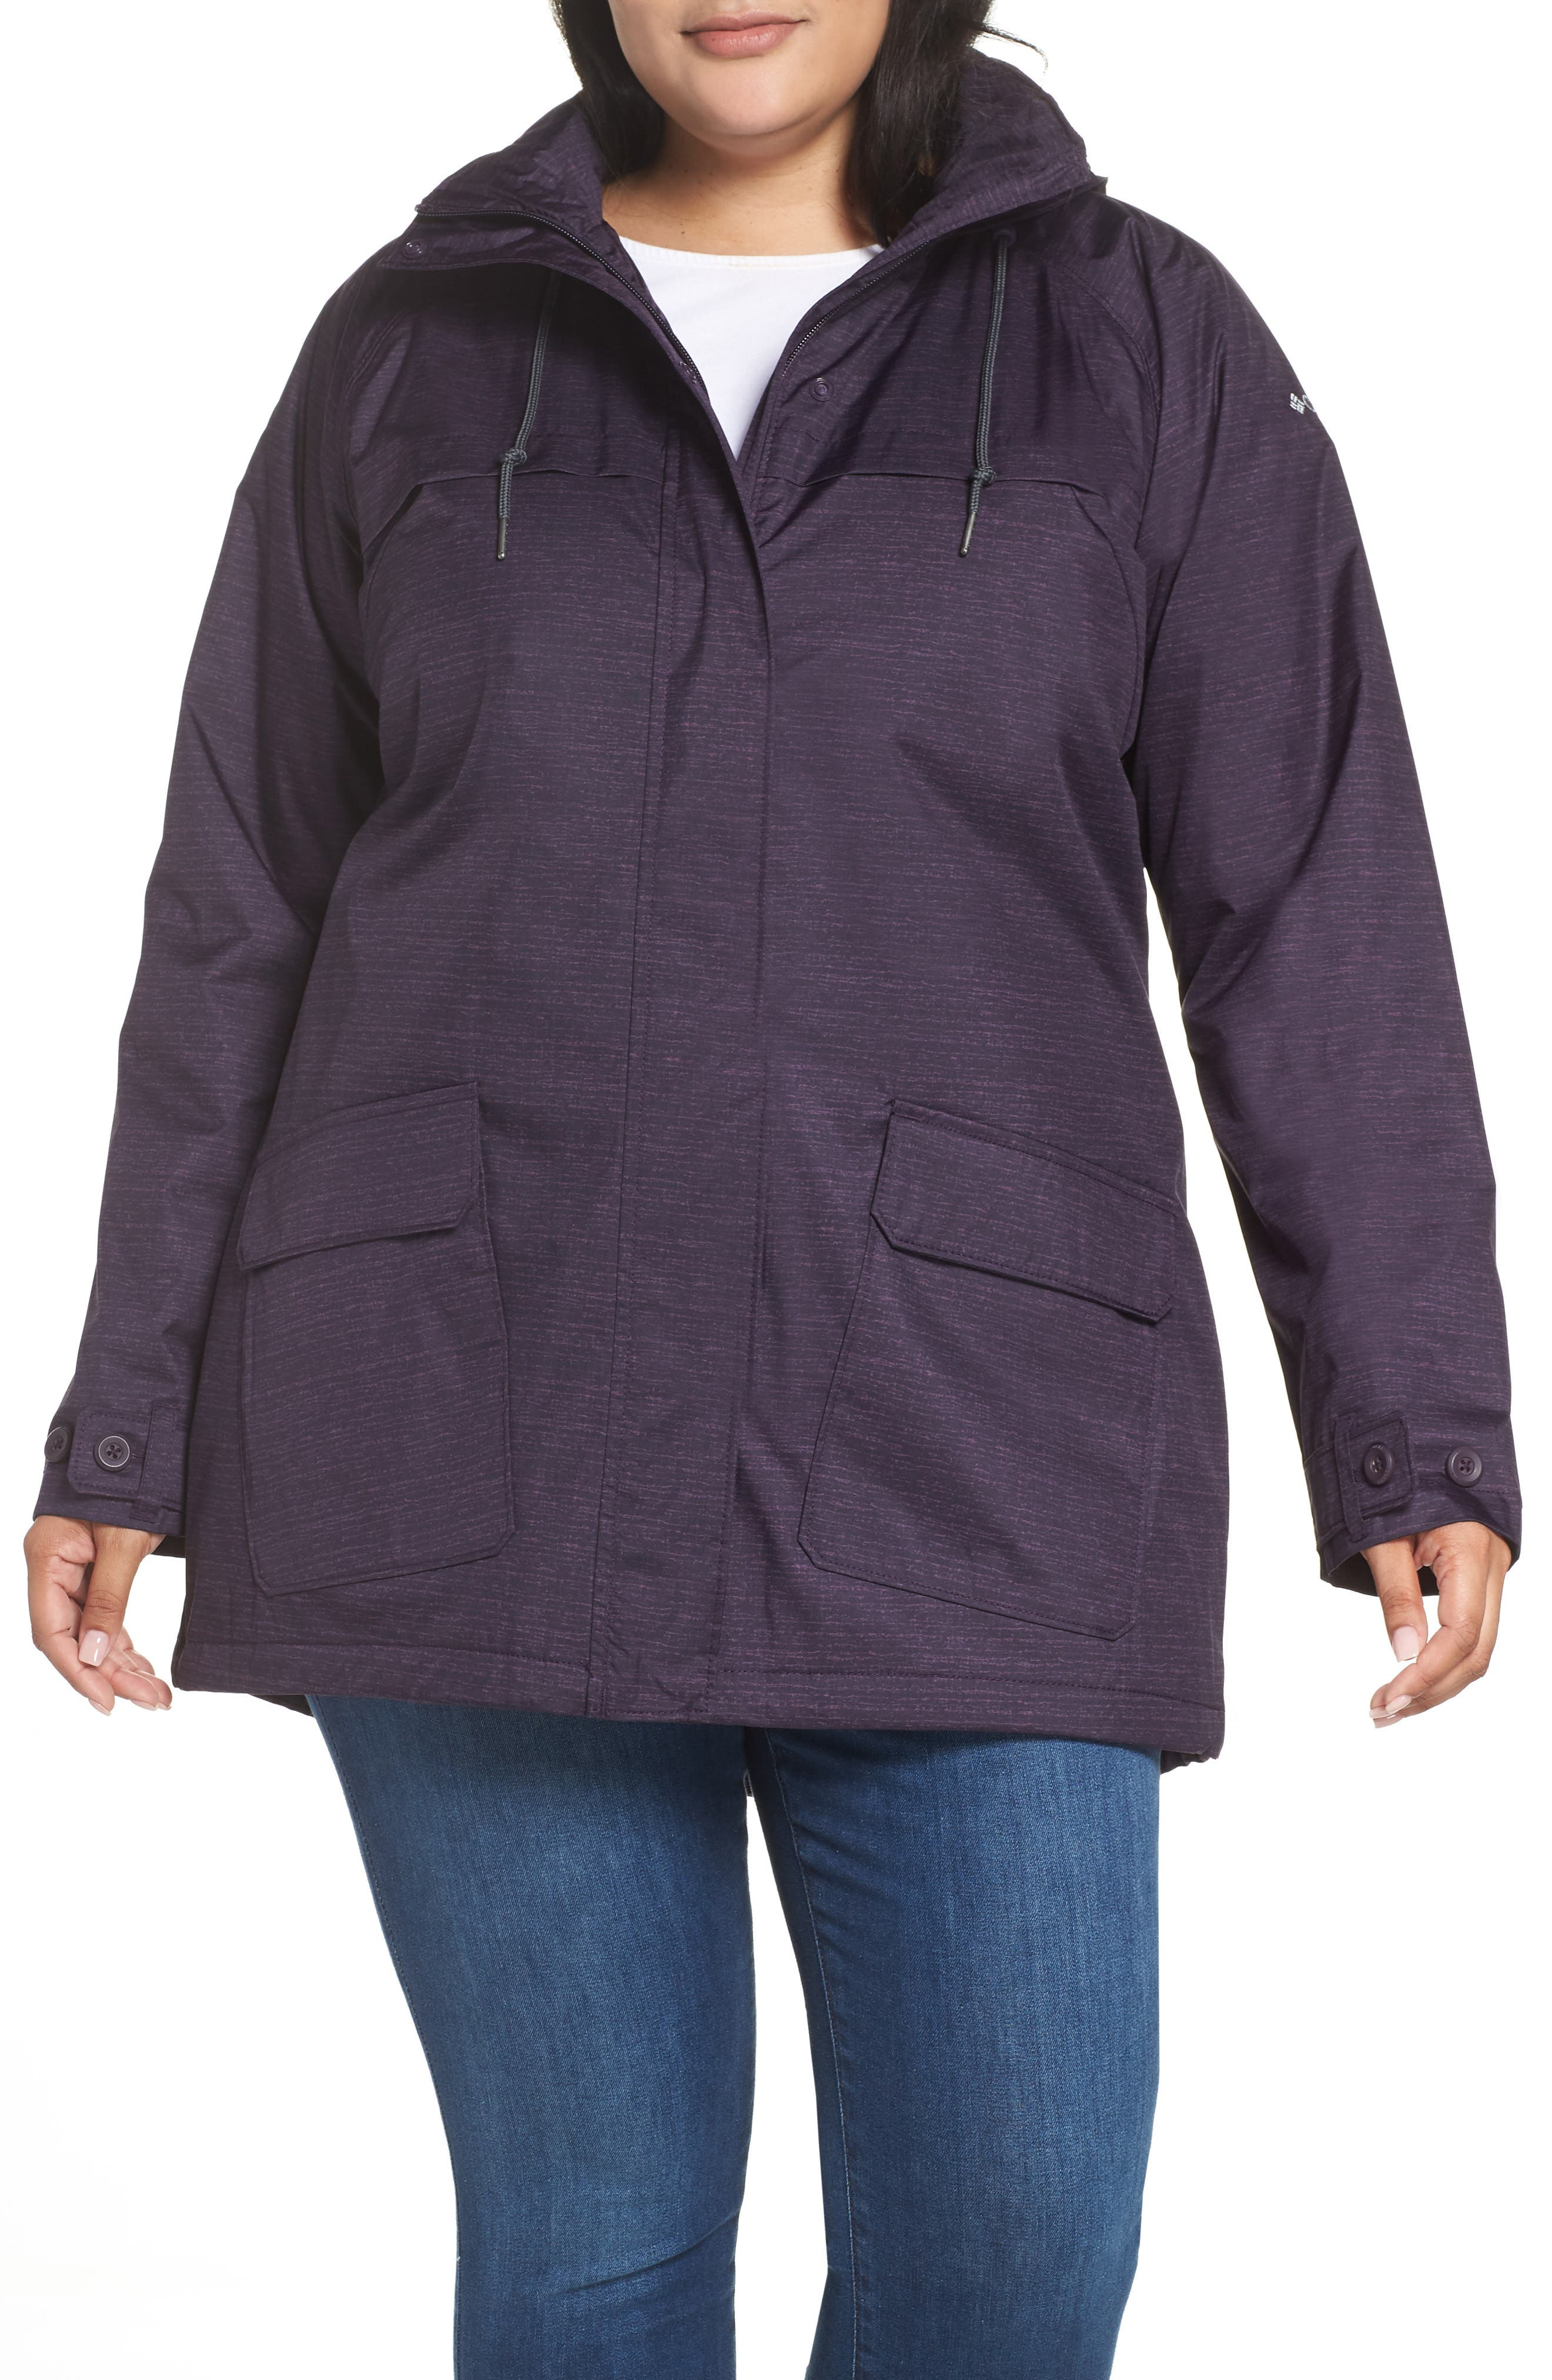 Lookout Crest Omni-Tech Waterproof Jacket,                         Main,                         color, DARK PLUM TEXTURE PRINT